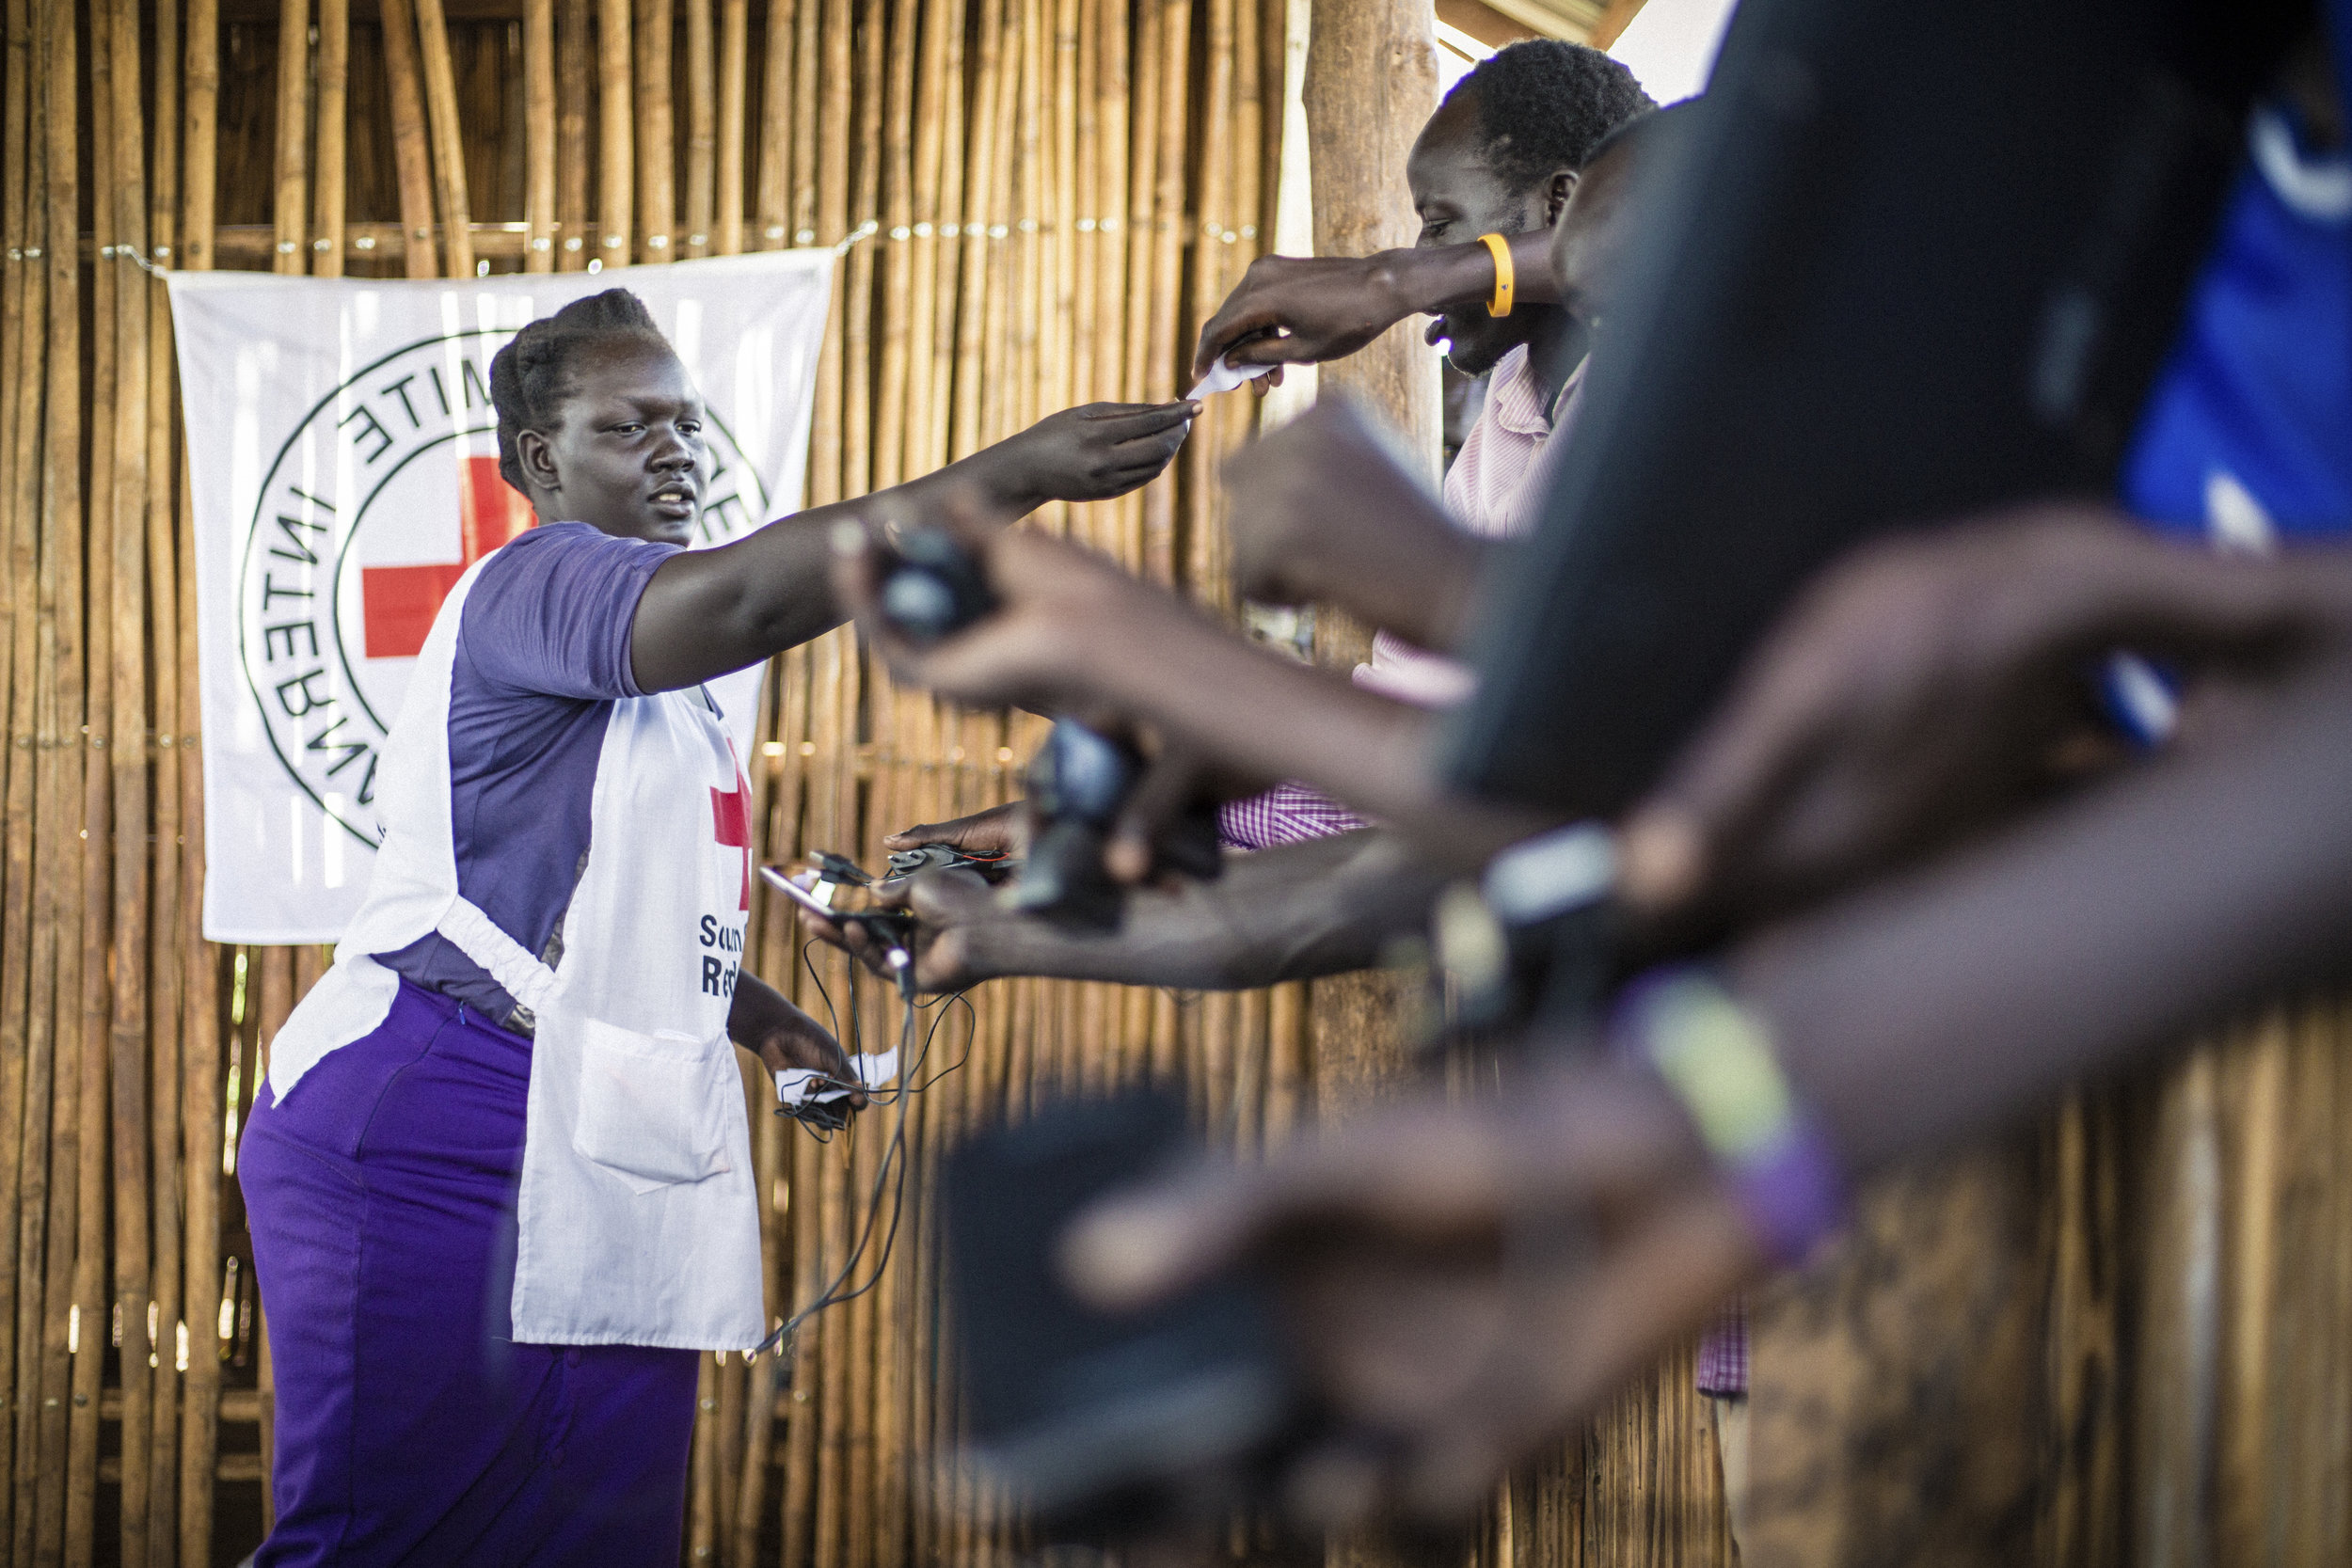 South Sudan. The ICRC and the South Sudan Red Cross Society set up a temporary phone charging services in Juba to enable displaced persons to give news to their families.